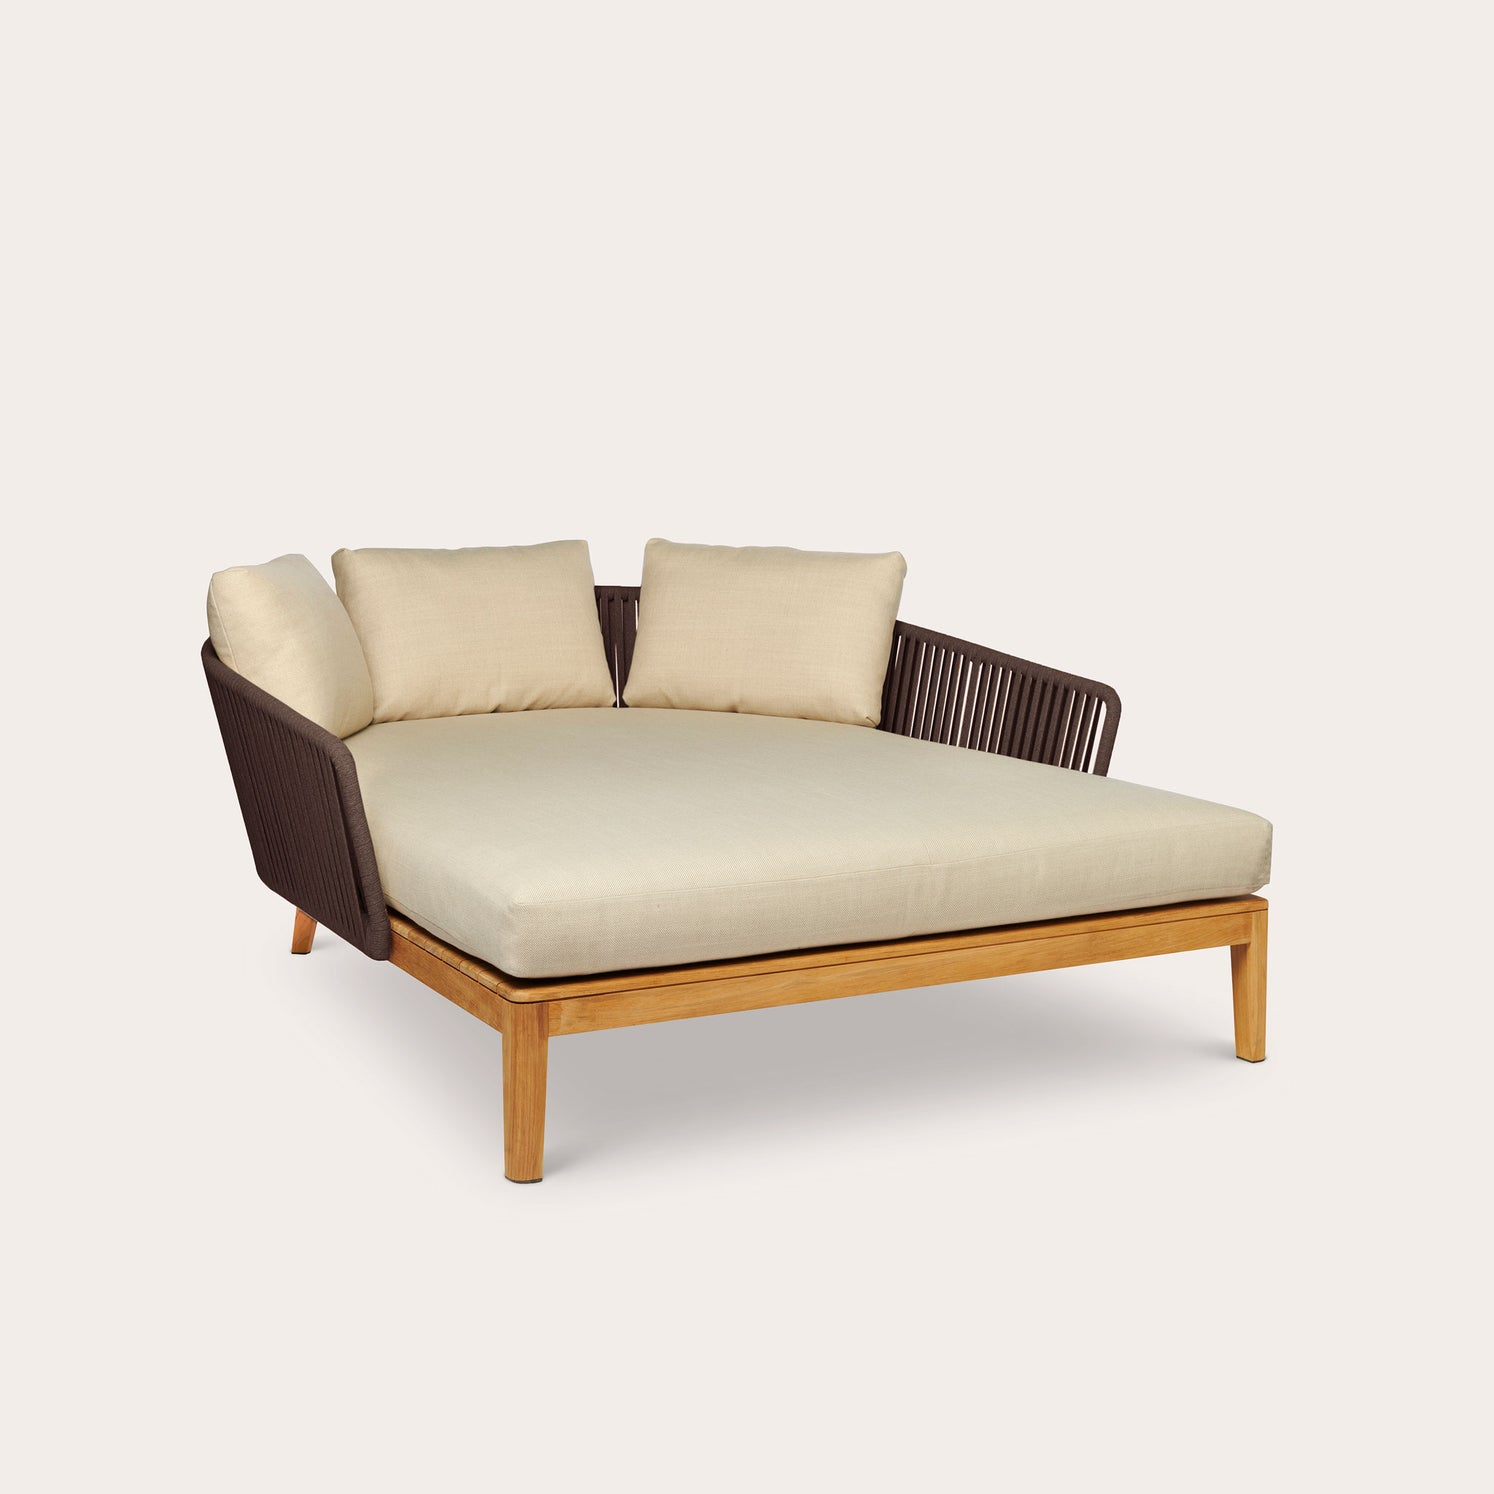 MOOD Daybed Outdoor Studio Segers Designer Furniture Sku: 007-200-11342